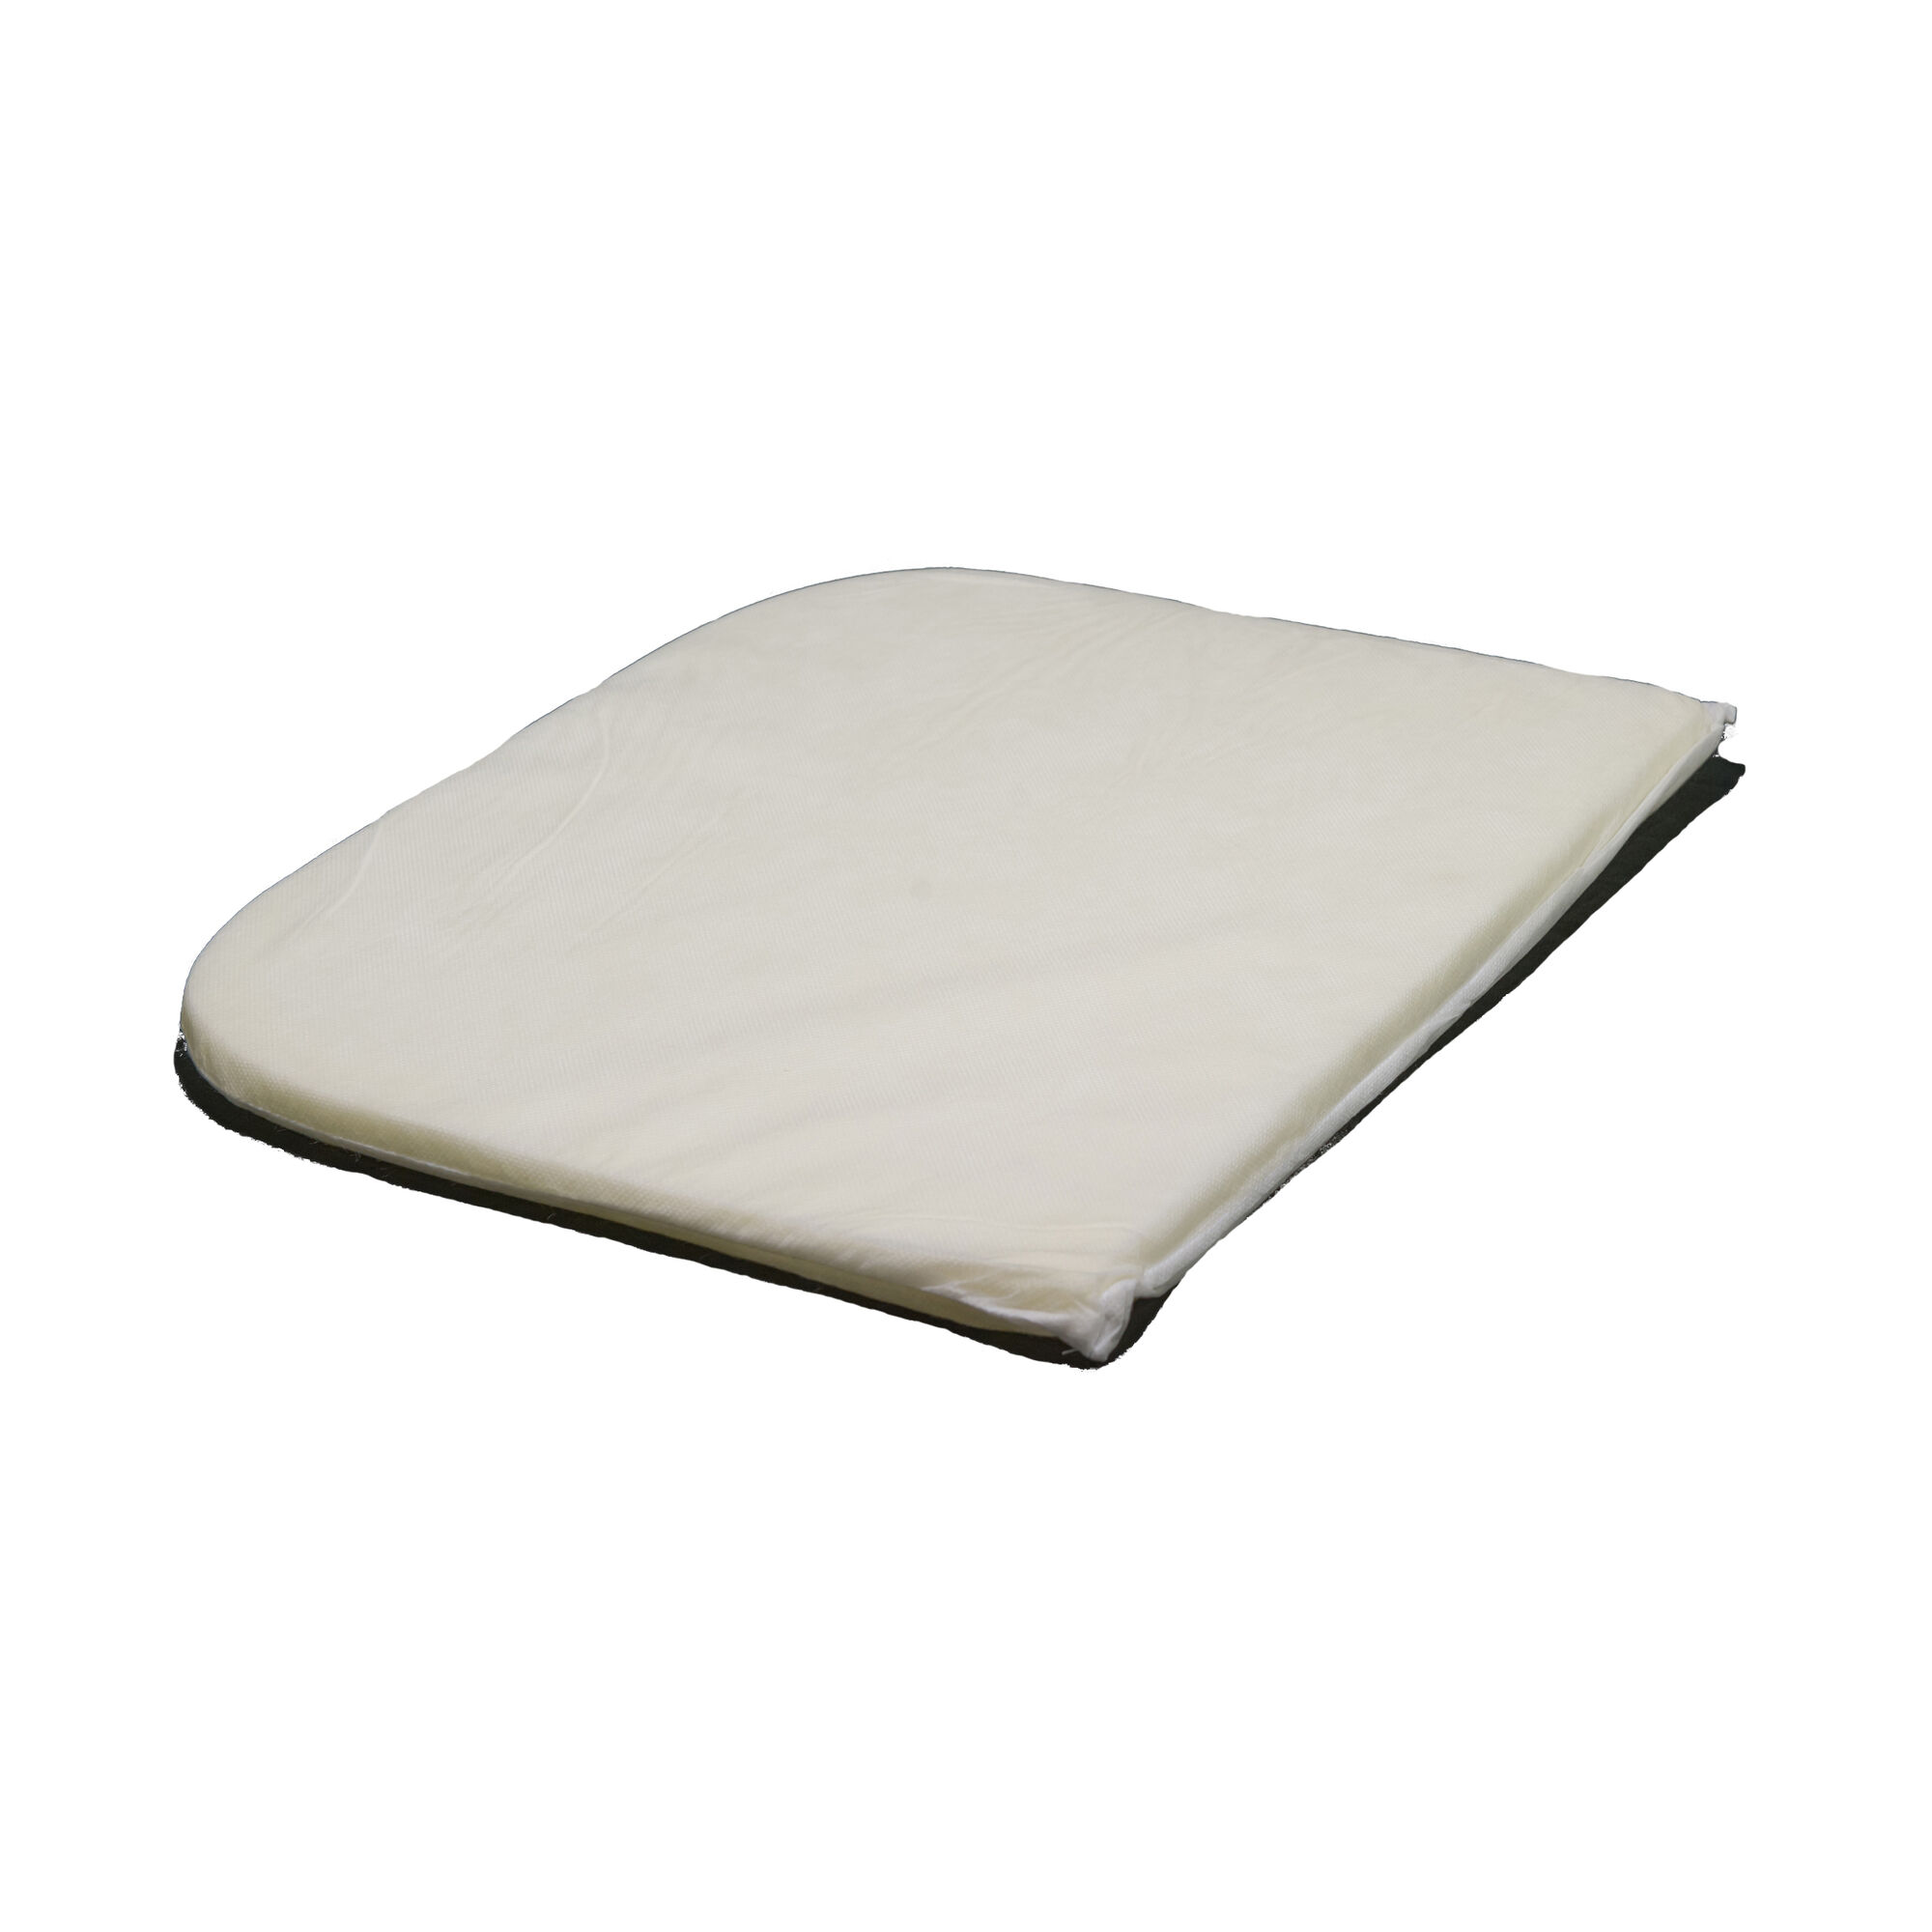 baby playard replacement mattresses & parts | chicco